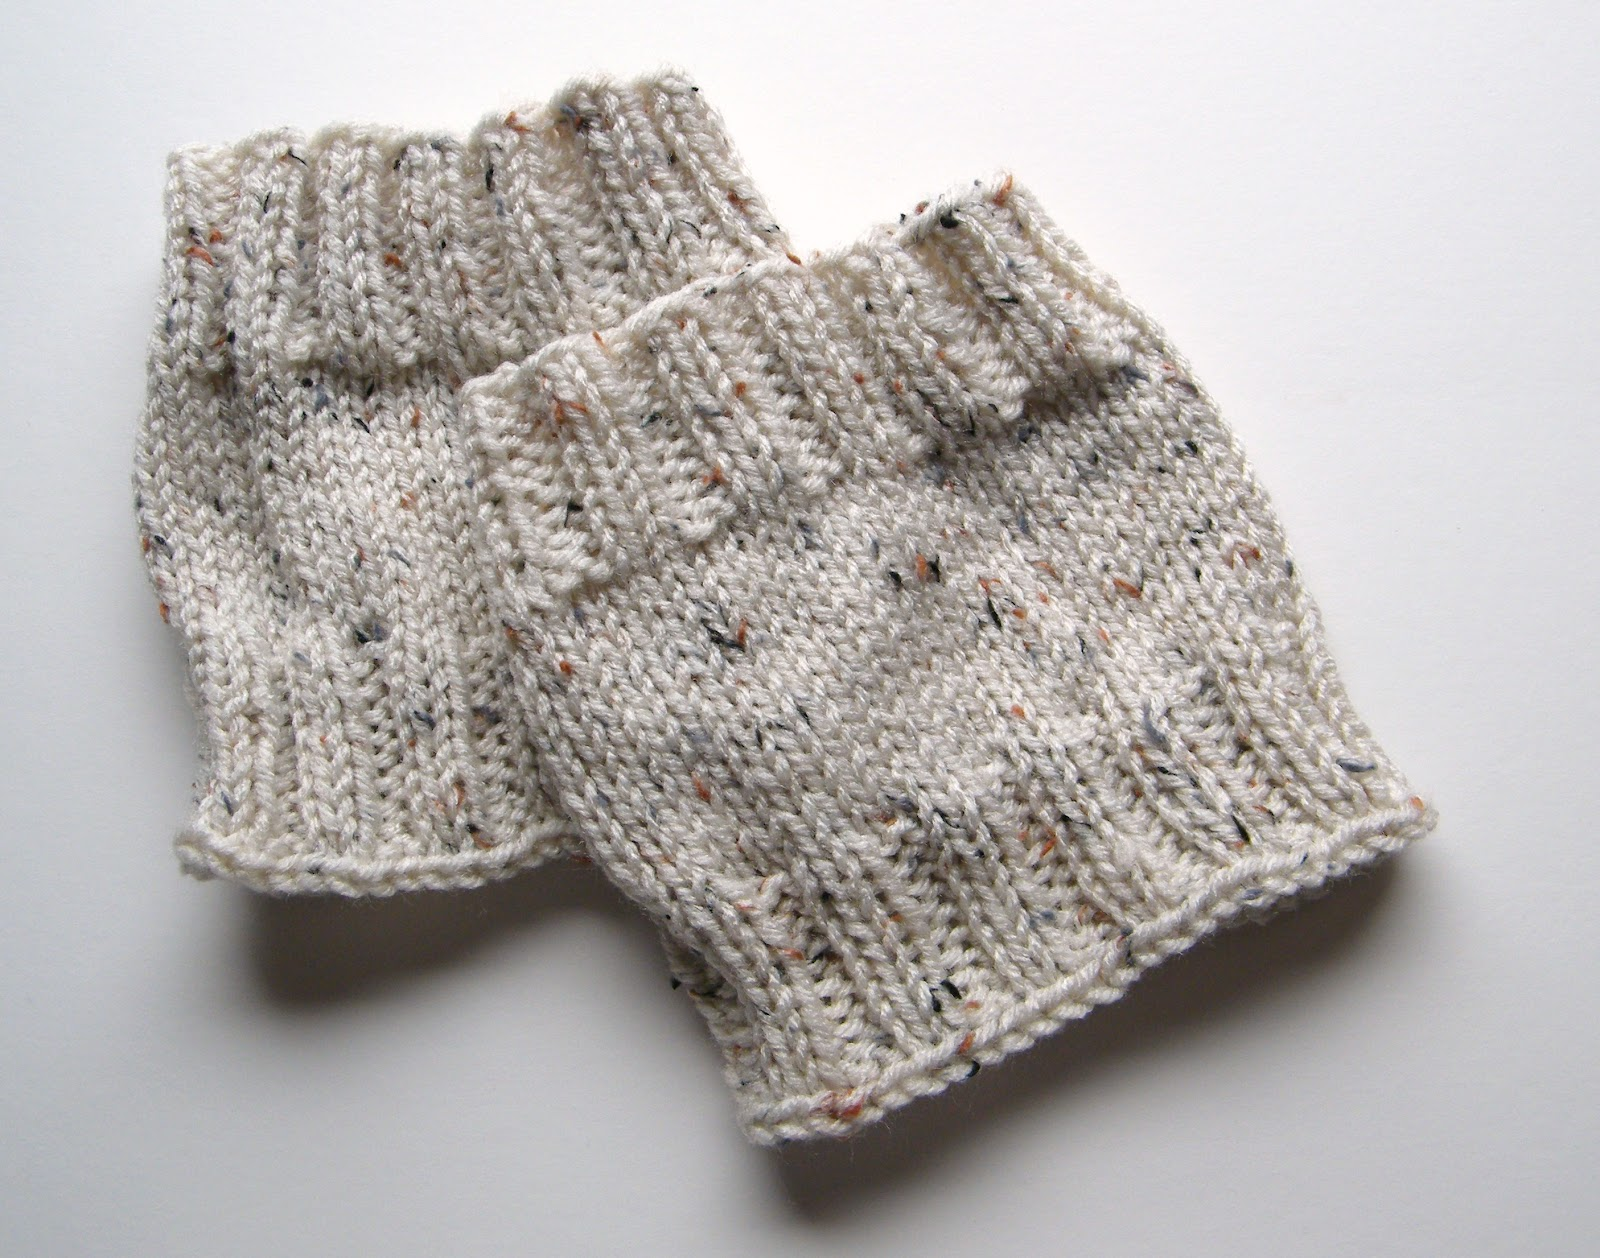 Knit Pattern For Boot Cuffs Free : Lewis Knits: Basic Boot Cuff Knitting Pattern